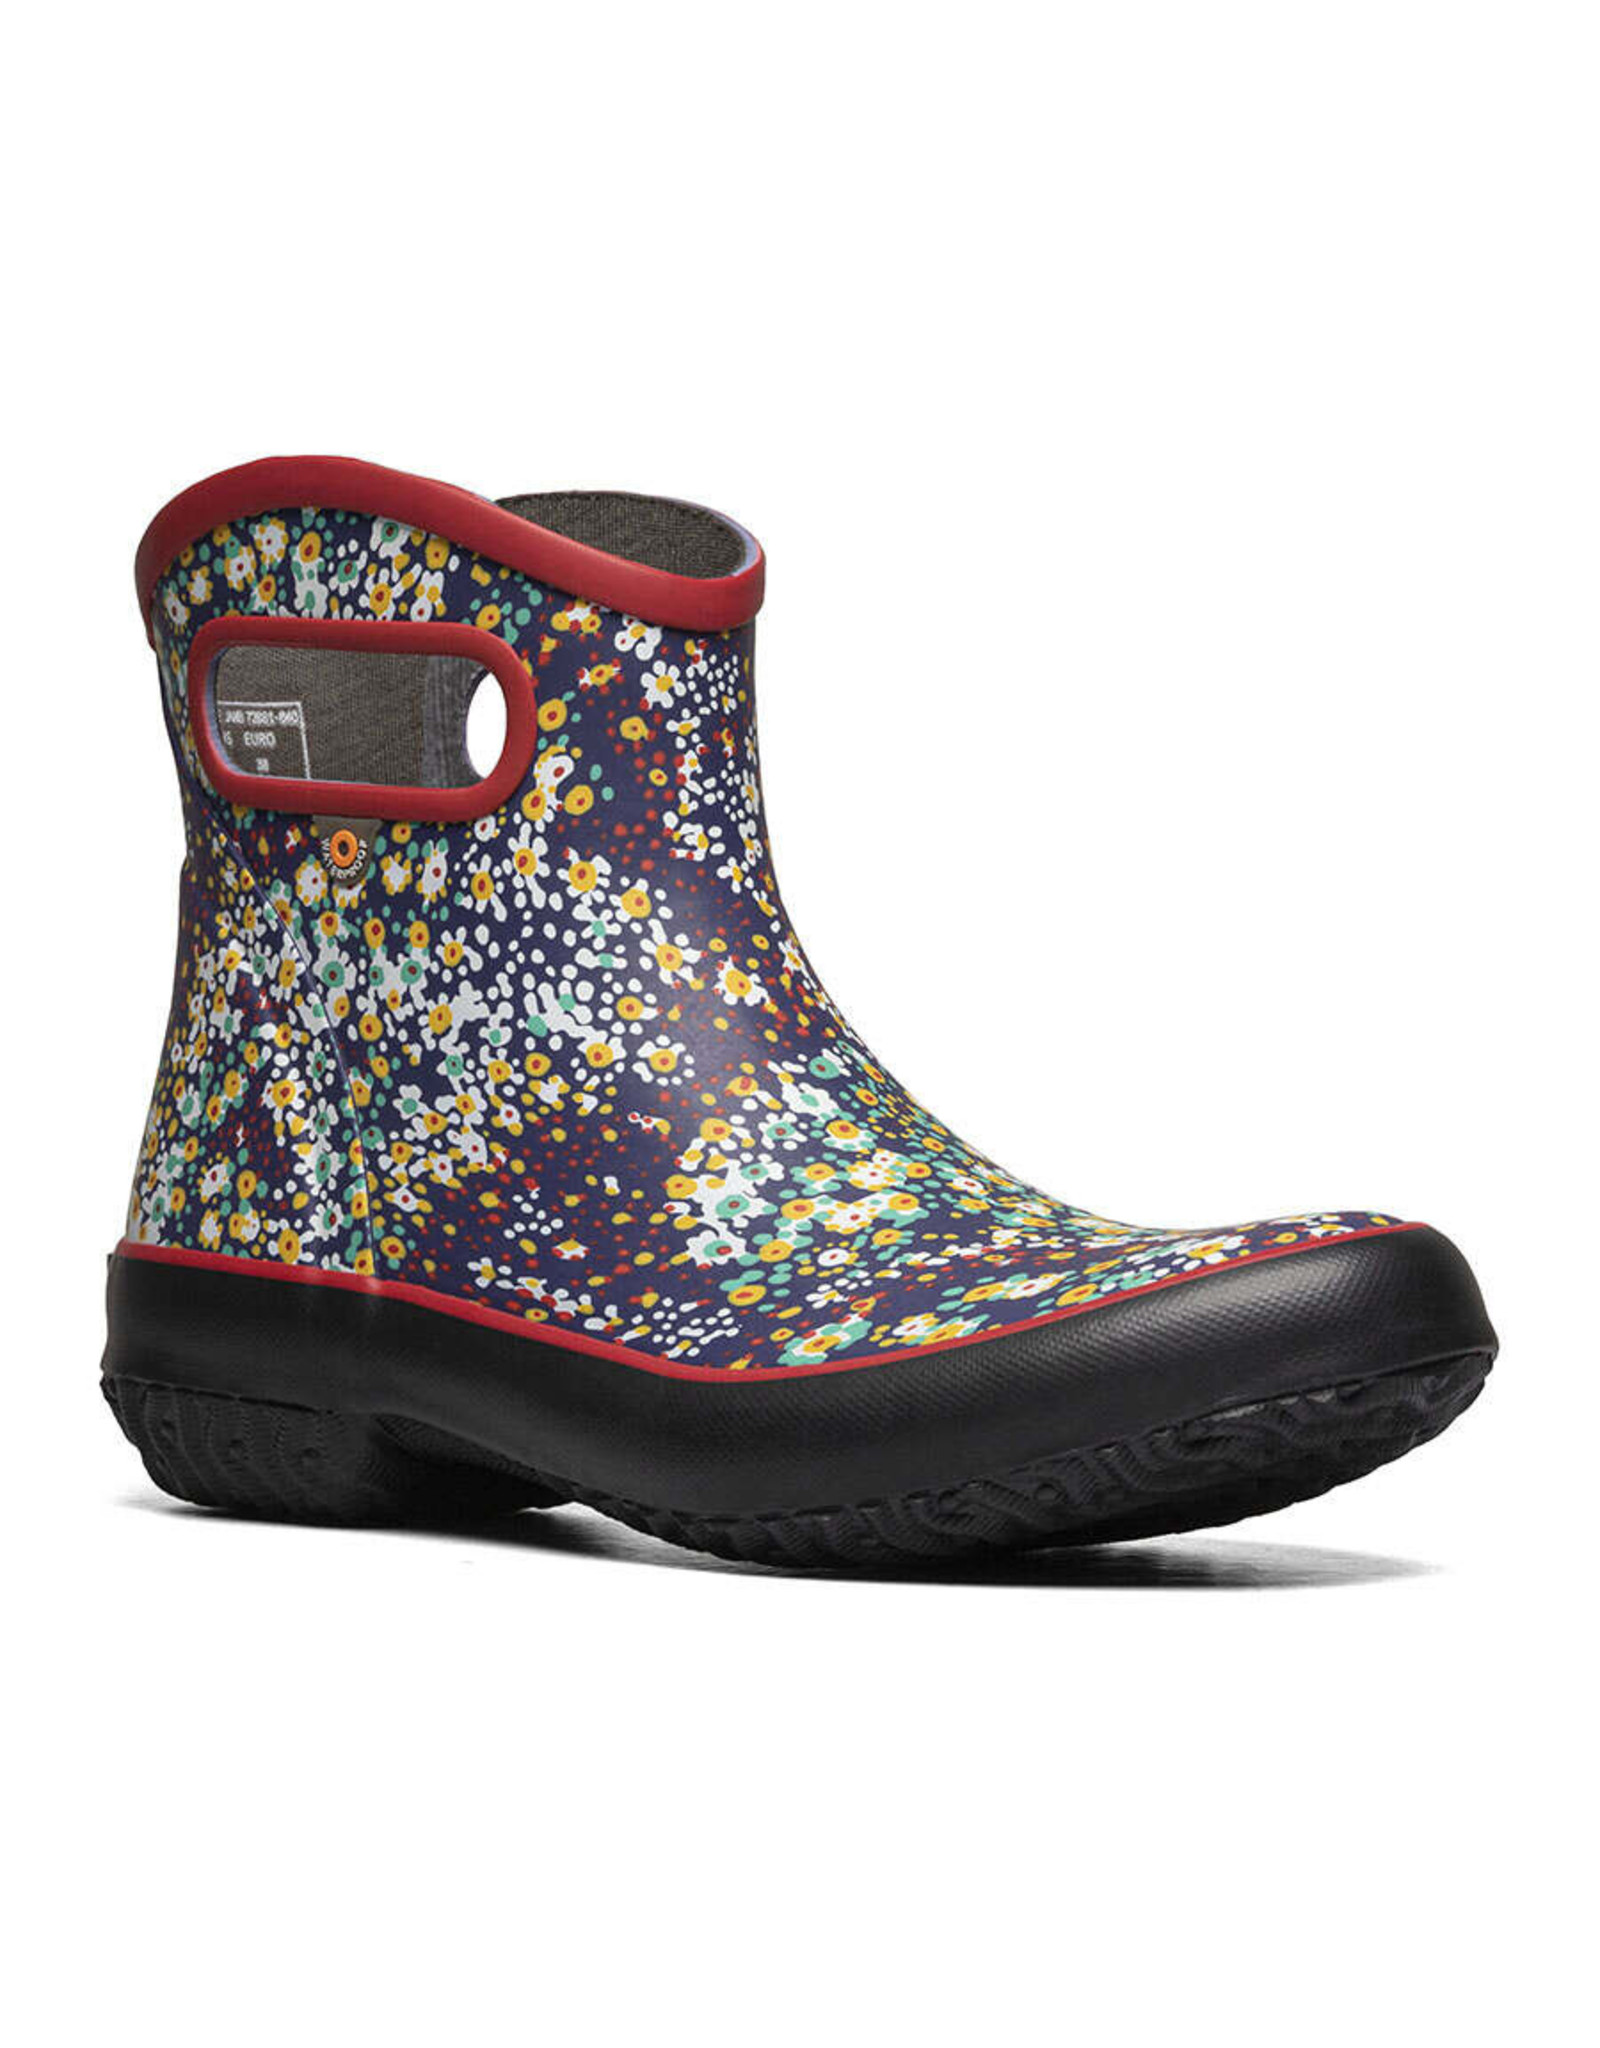 BOGS WOMEN'S PATCH ANKLE GARDEN BOOTS-CHERRY